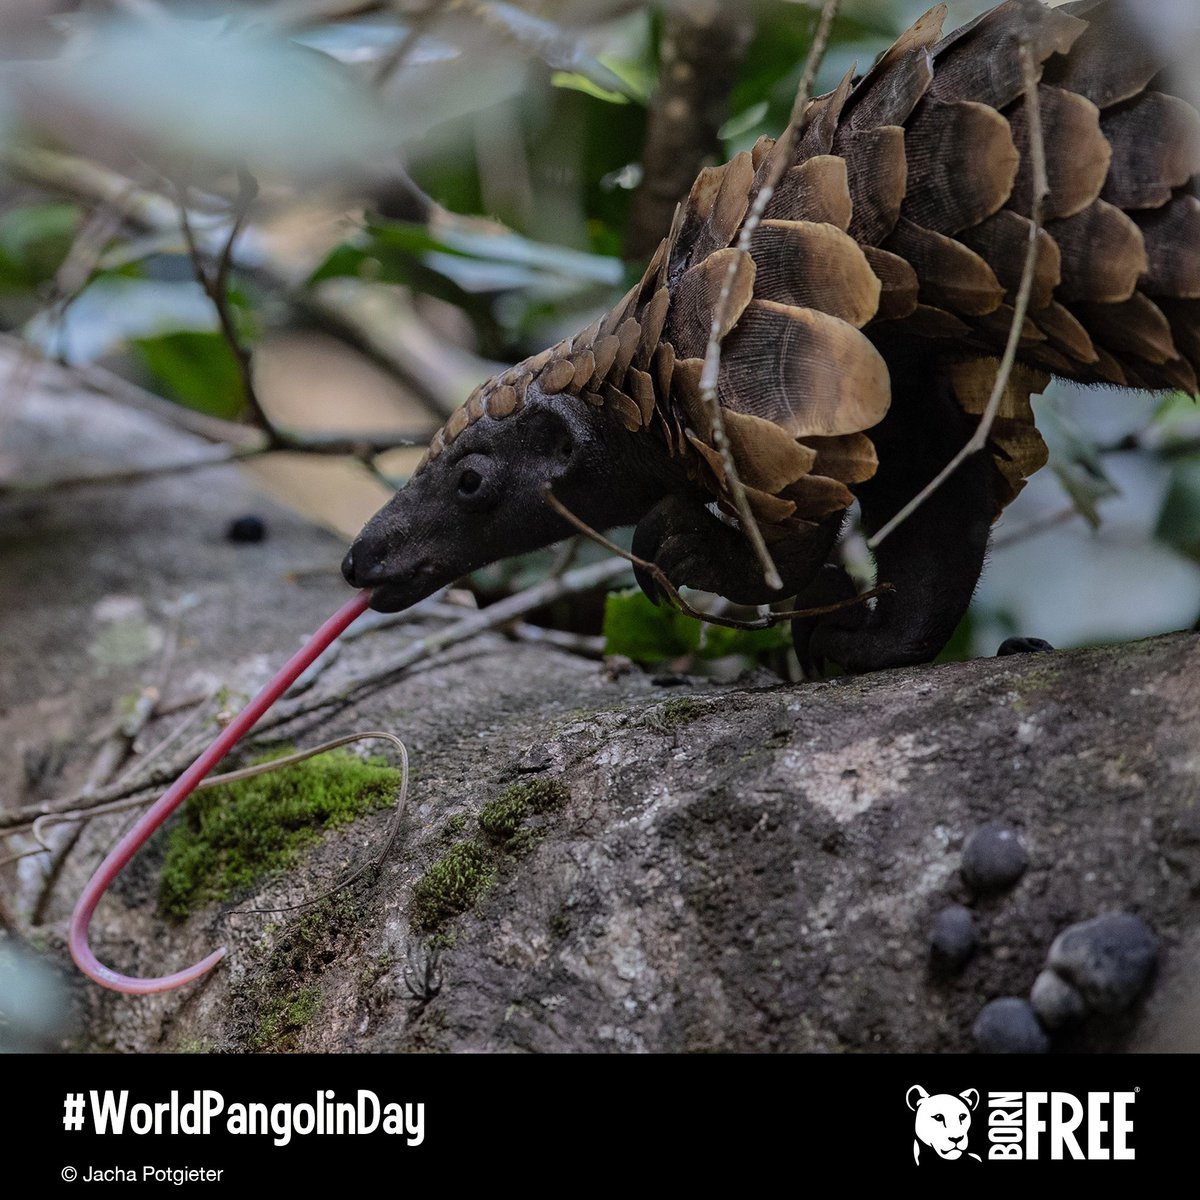 It's #WorldPangolinDay! Pangolins are the only mammals to have plate-like scales, &amp; they get their name from the Malay word 'pengguling', which means 'rolling up'. Find out about these fascinating creatures here:  https://www. bornfree.org.uk/animals/pangol ins &nbsp; …   #KeepWildlifeInTheWild #EndWildlifeCrime <br>http://pic.twitter.com/u5AKK4DXE2